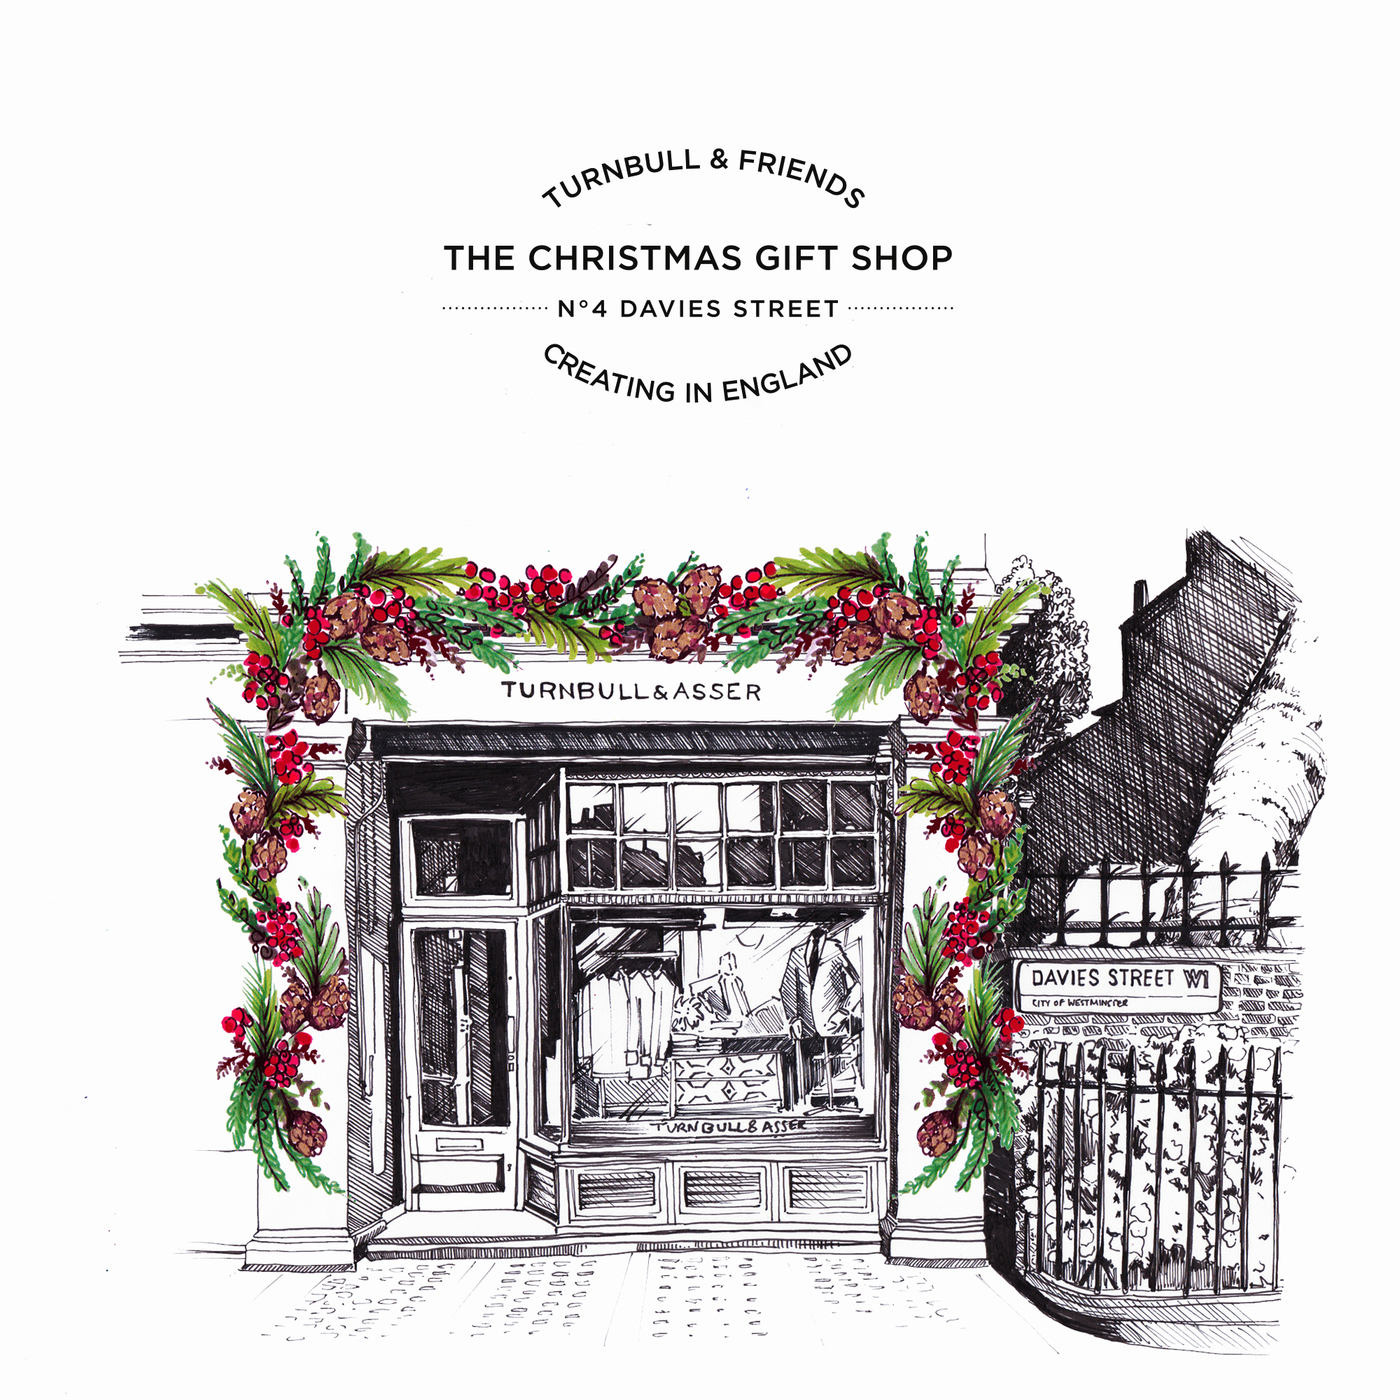 Turnbull & Friends - The Christmas Gift Shop